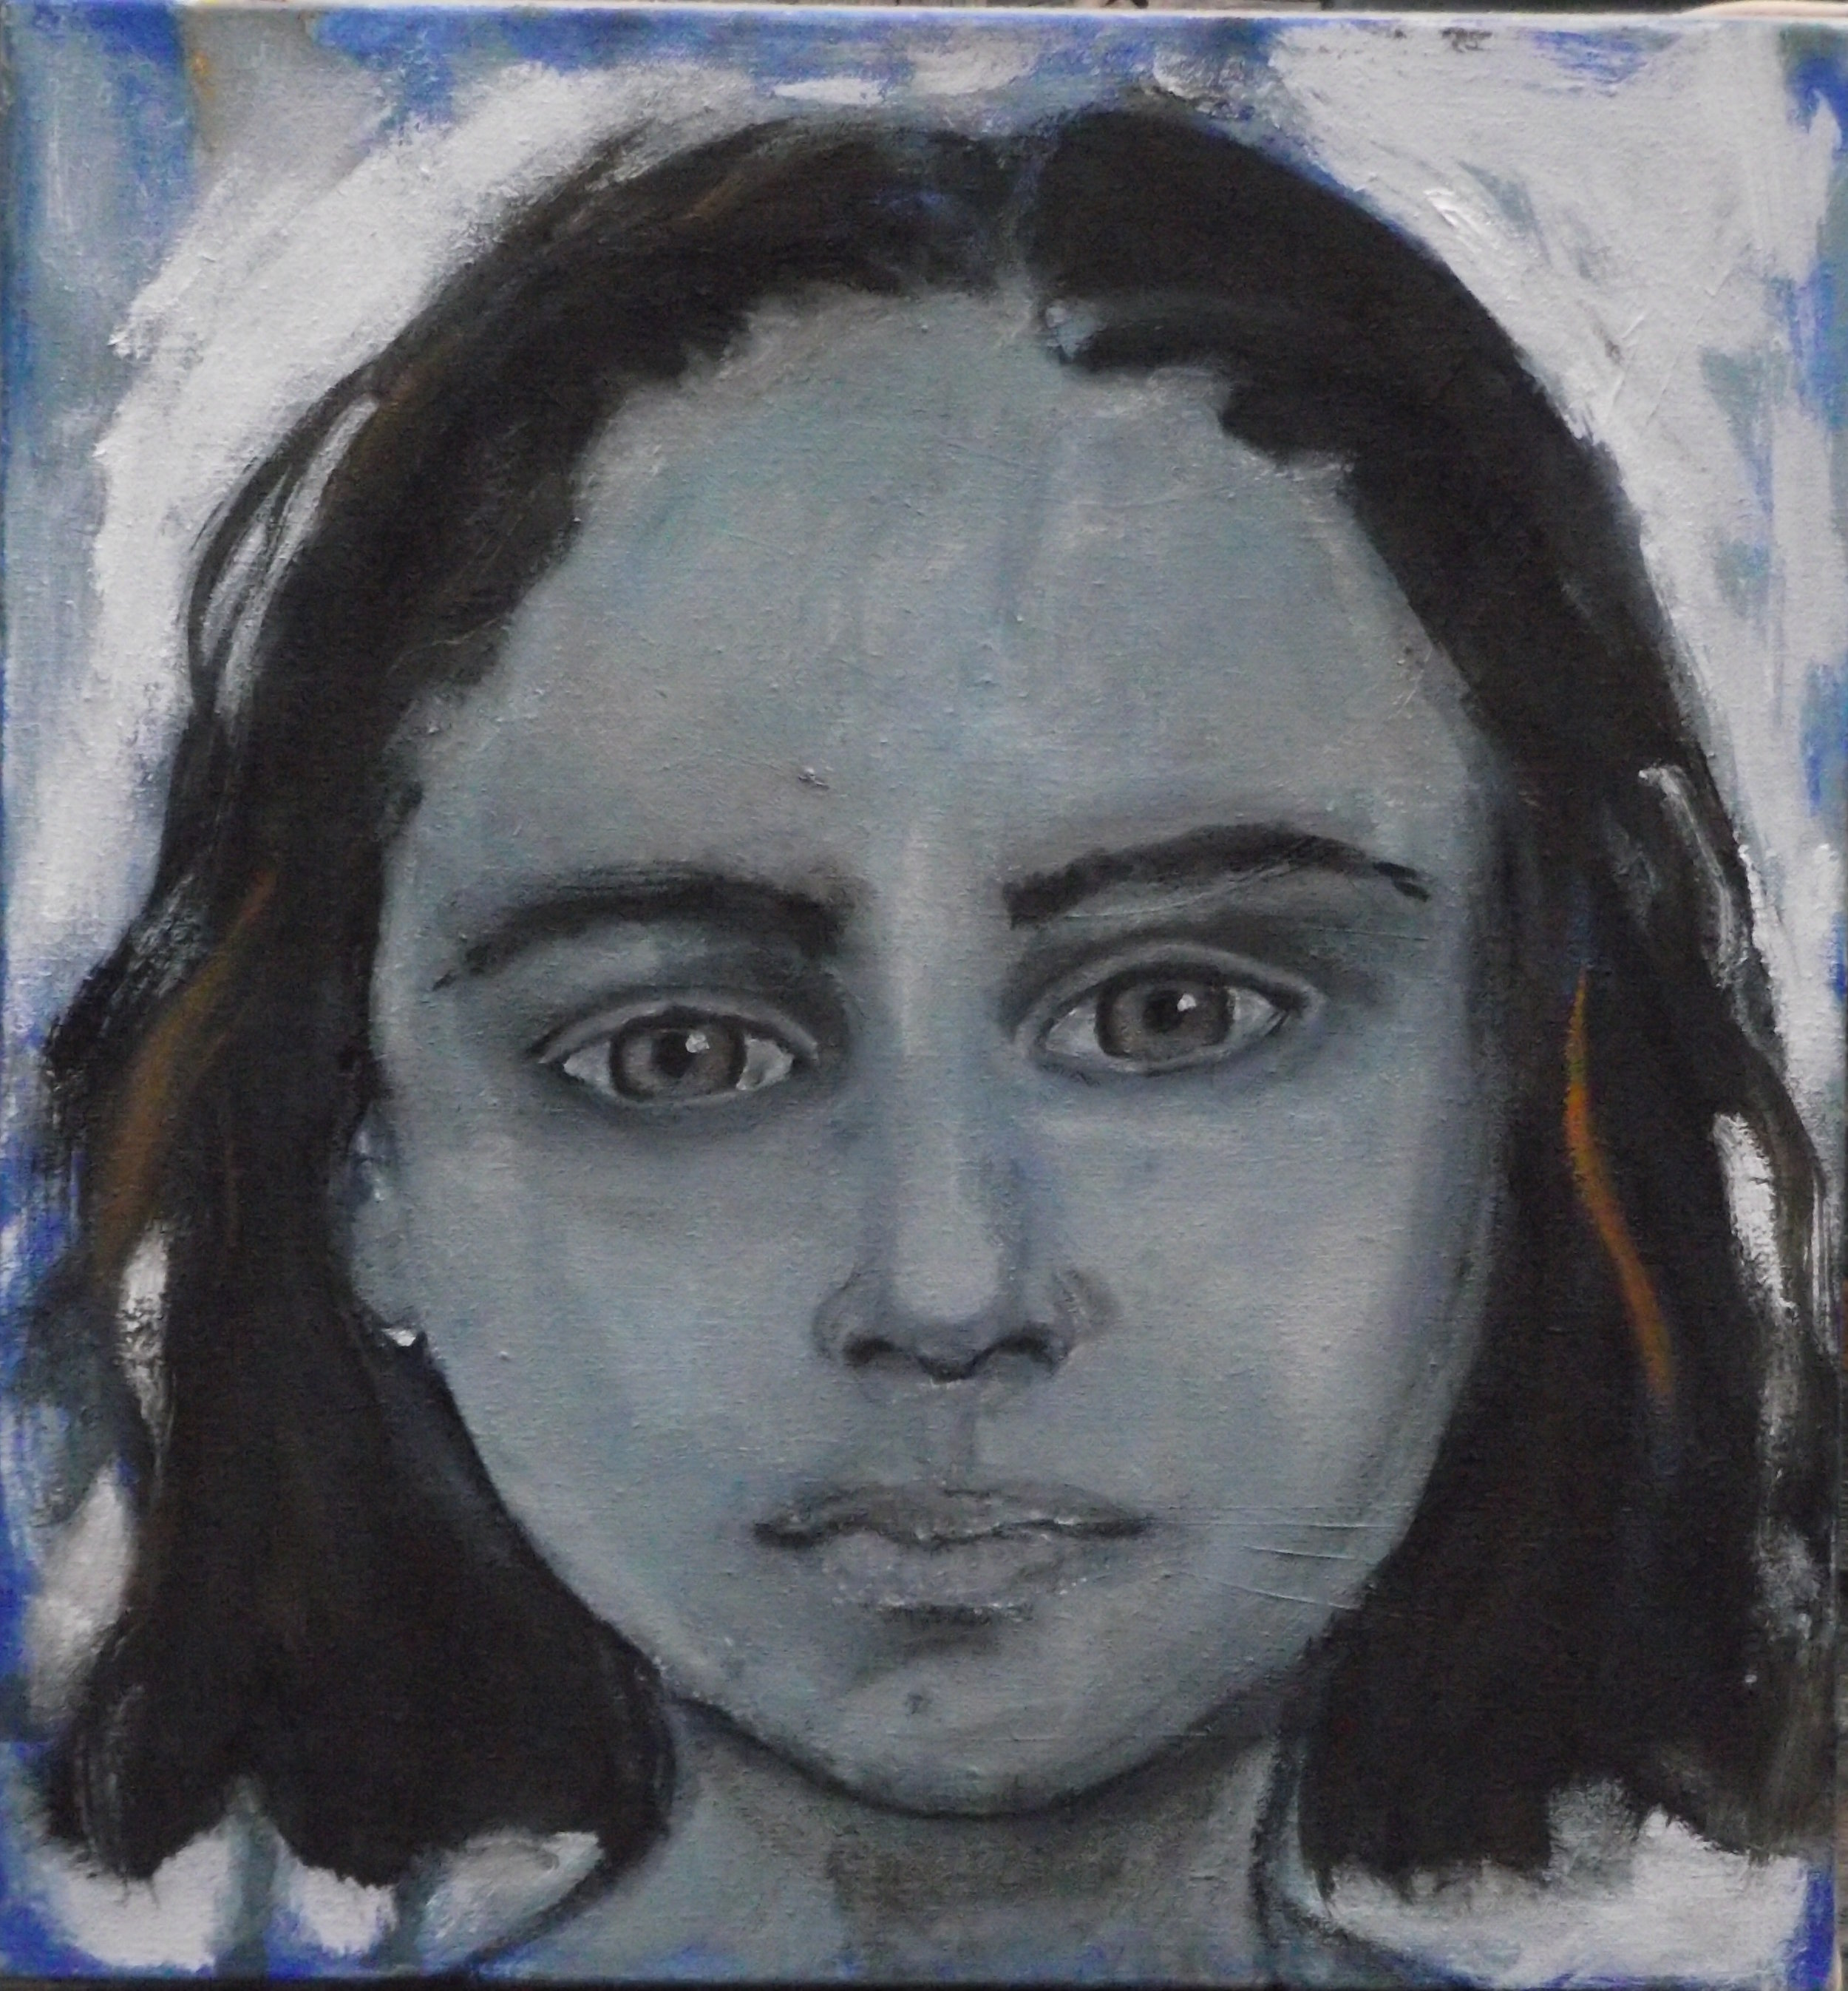 Portuguese girl - Oil on canvas - Sold